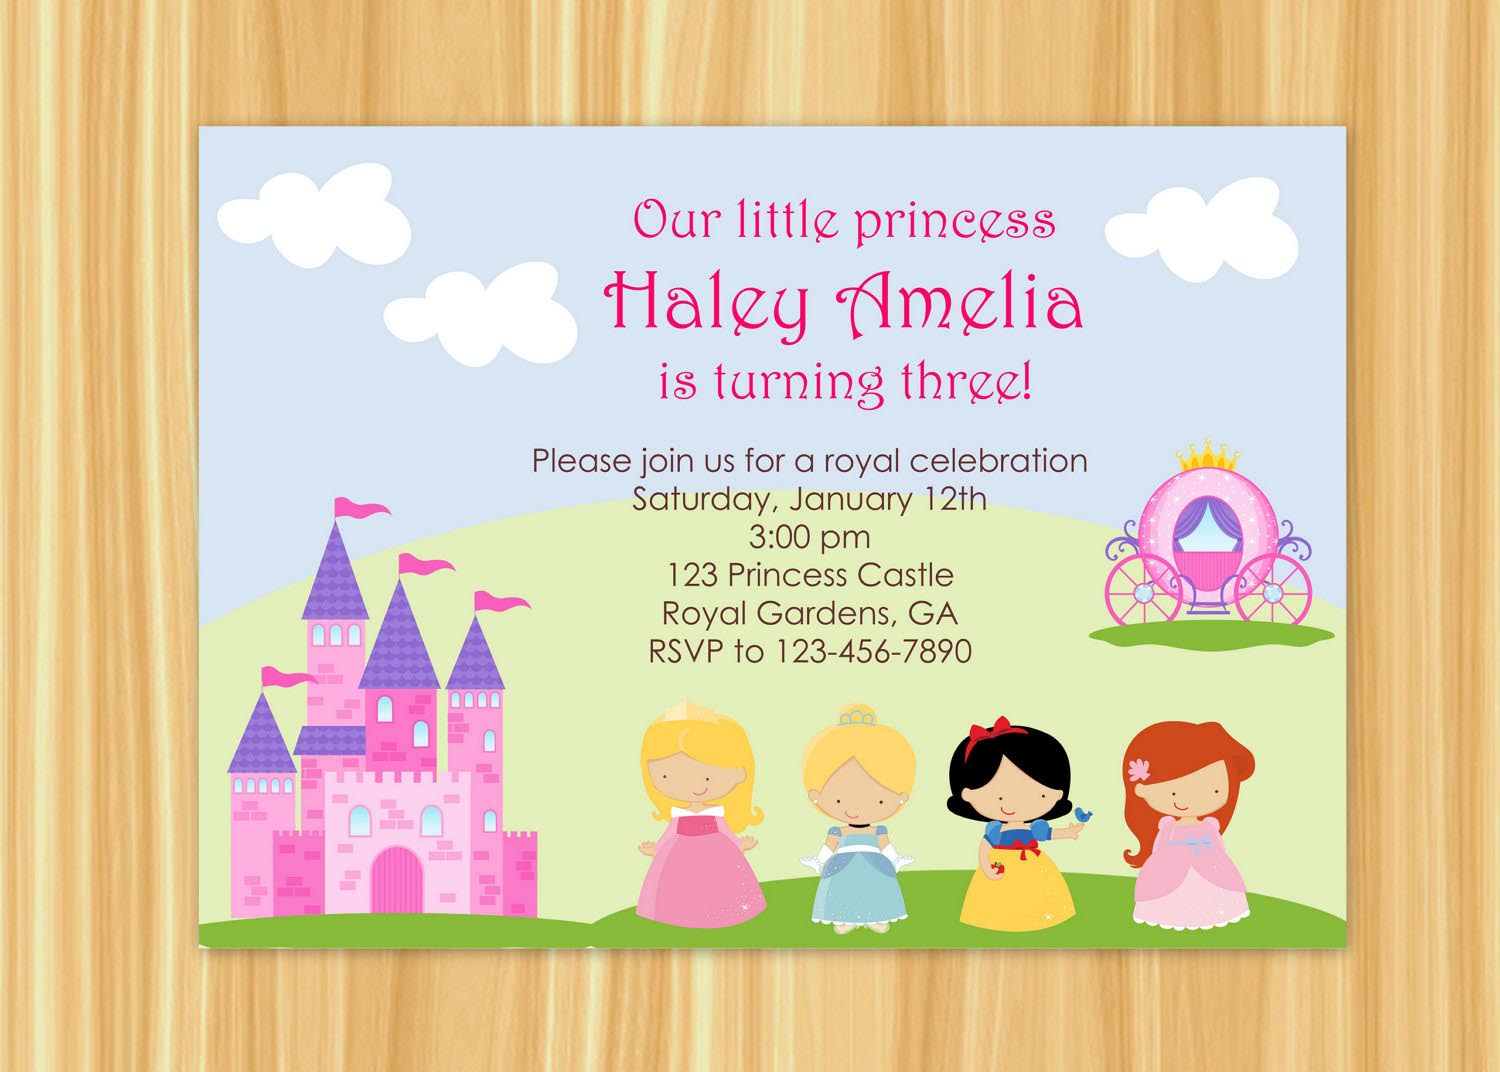 Princess party invitation wording boatremyeaton princess party invitations wording home party ideas stopboris